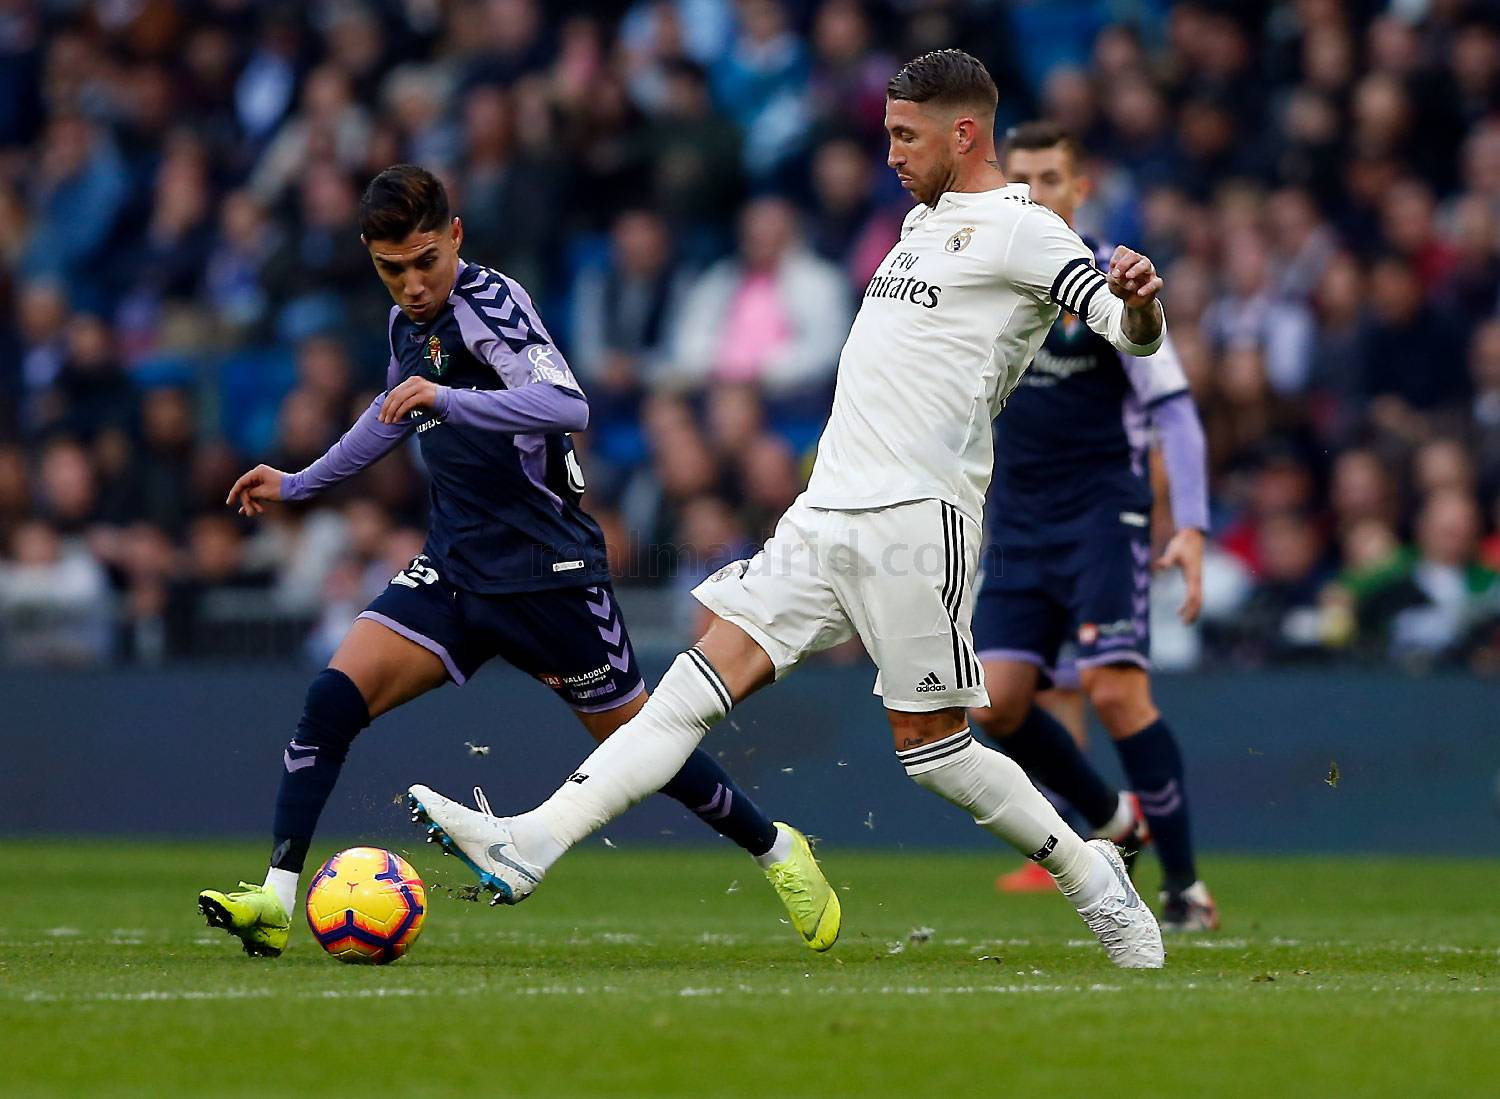 Real Madrid - Real Madrid - Valladolid - 03-11-2018